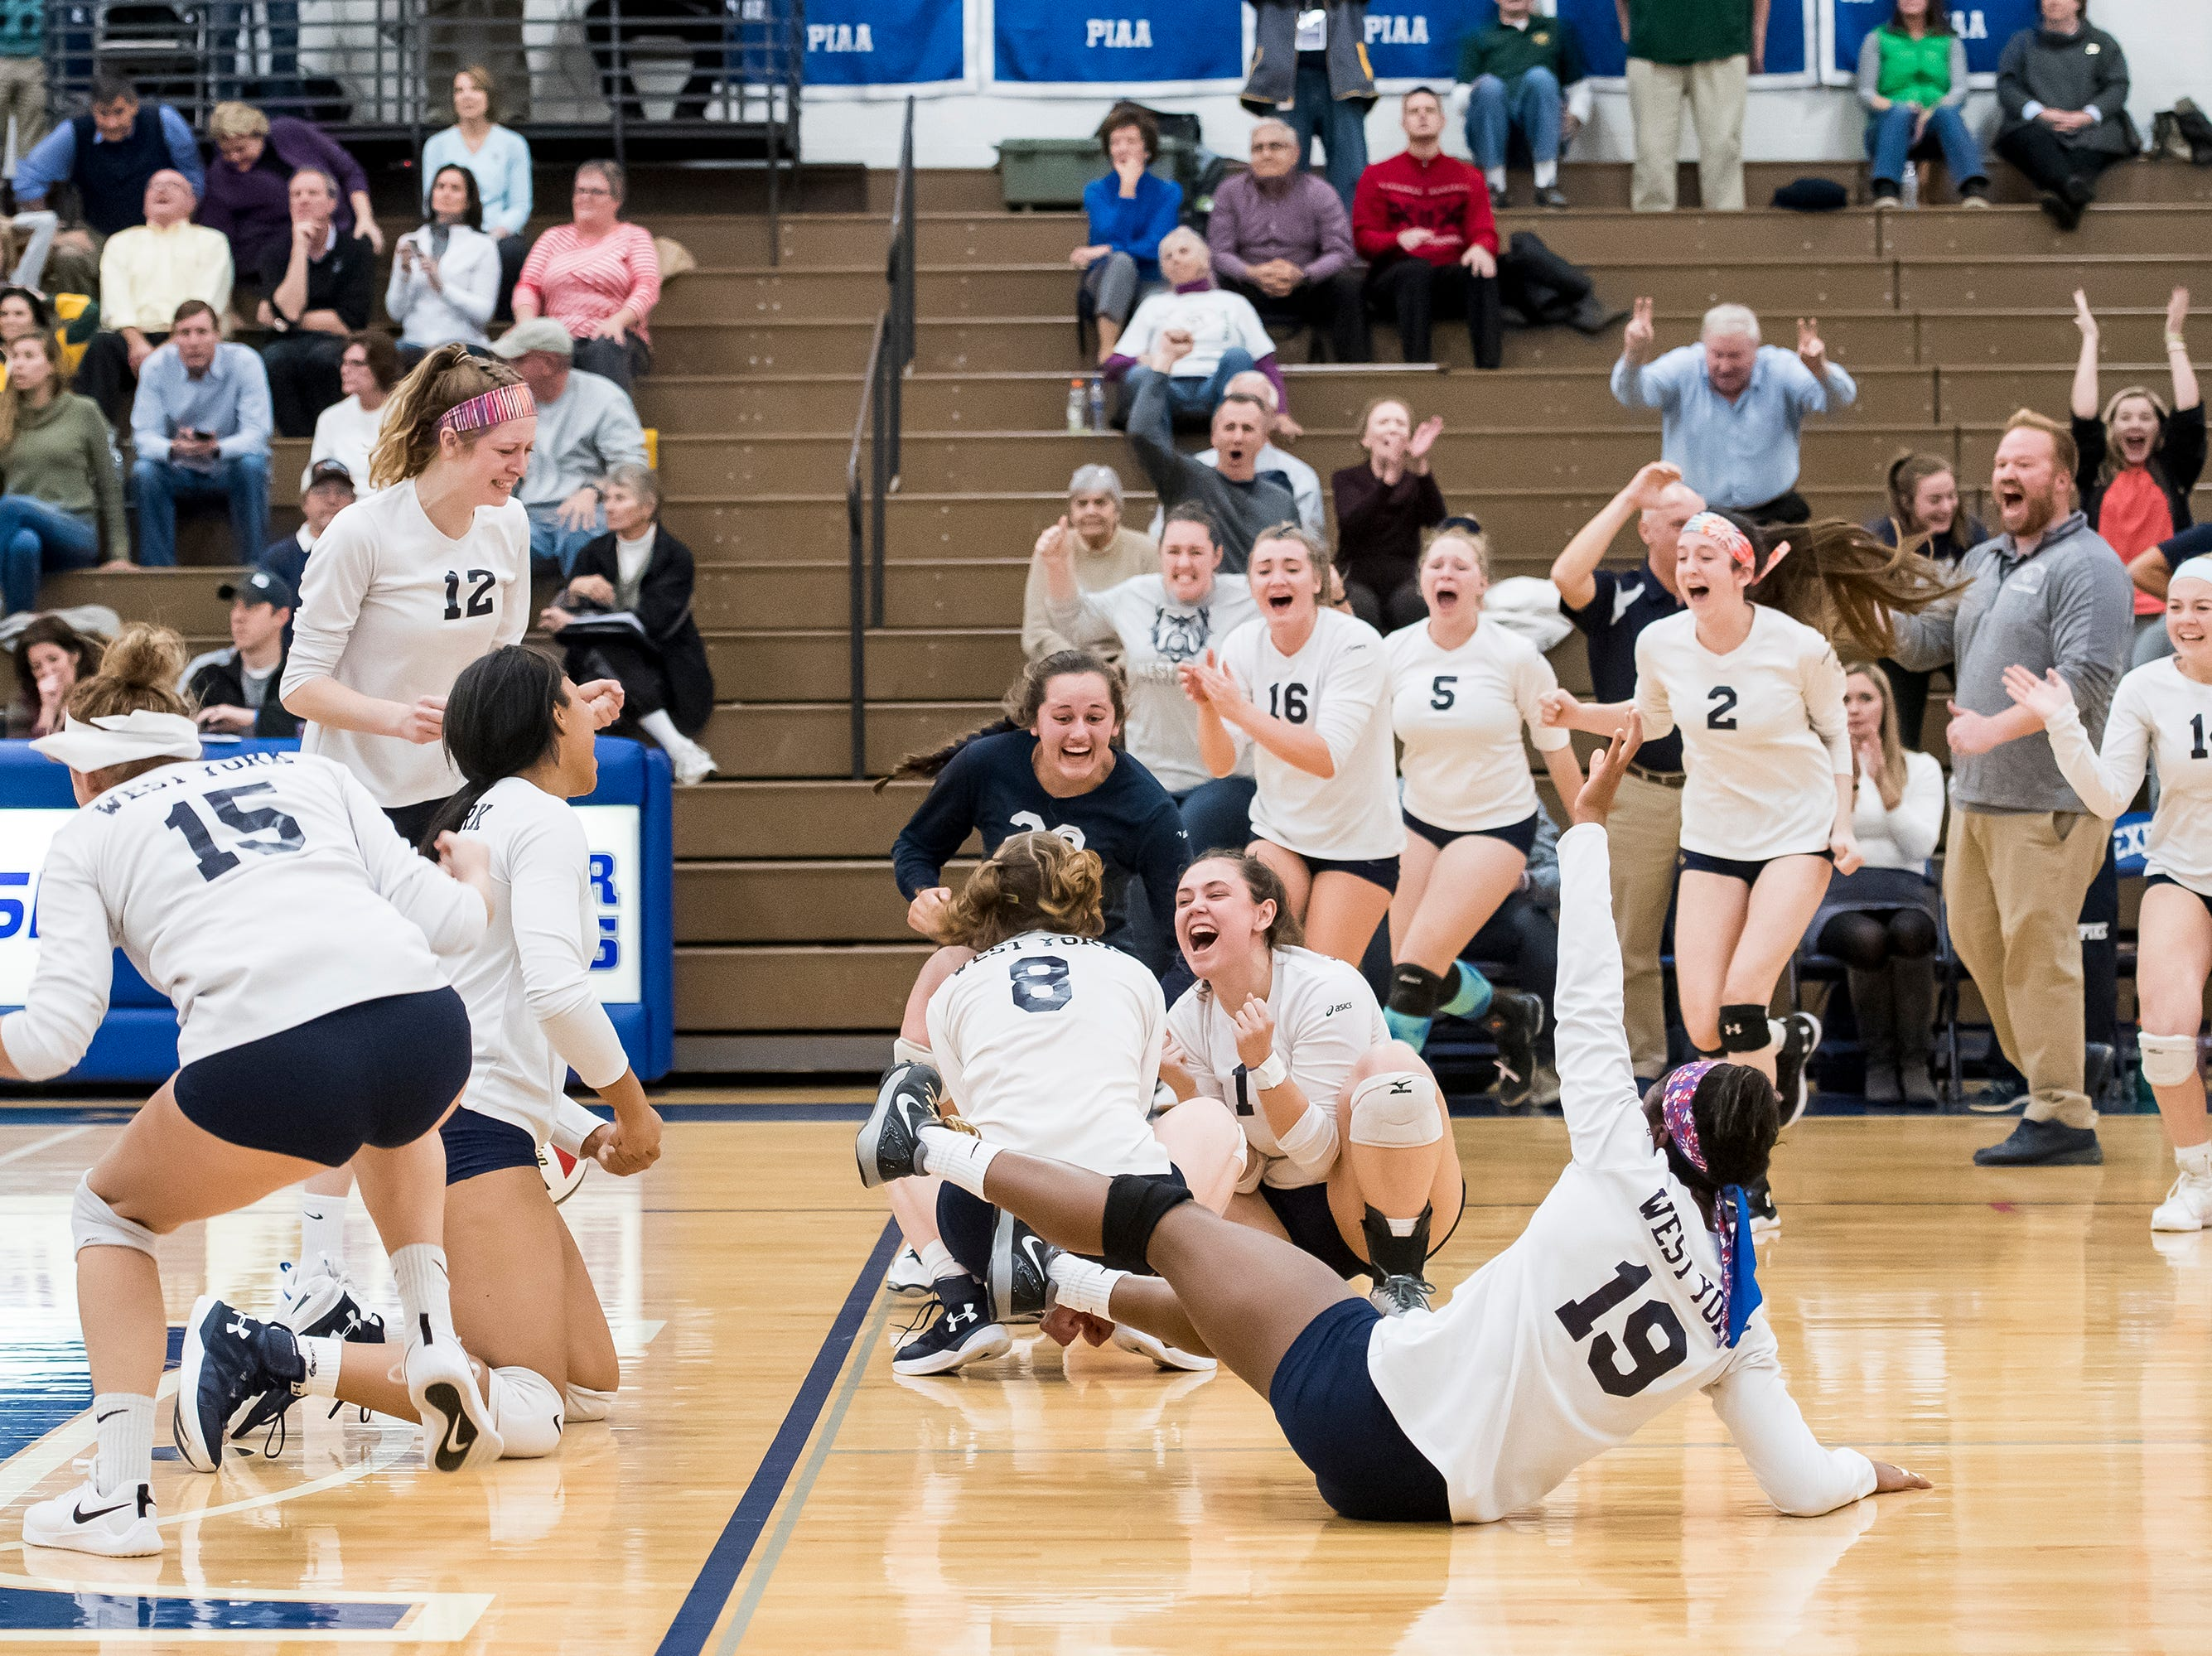 West York celebrates after defeating Allentown Central Catholic in a PIAA 3A semifinal game at Exeter Township High School in Reading on Tuesday, November 13, 2018.